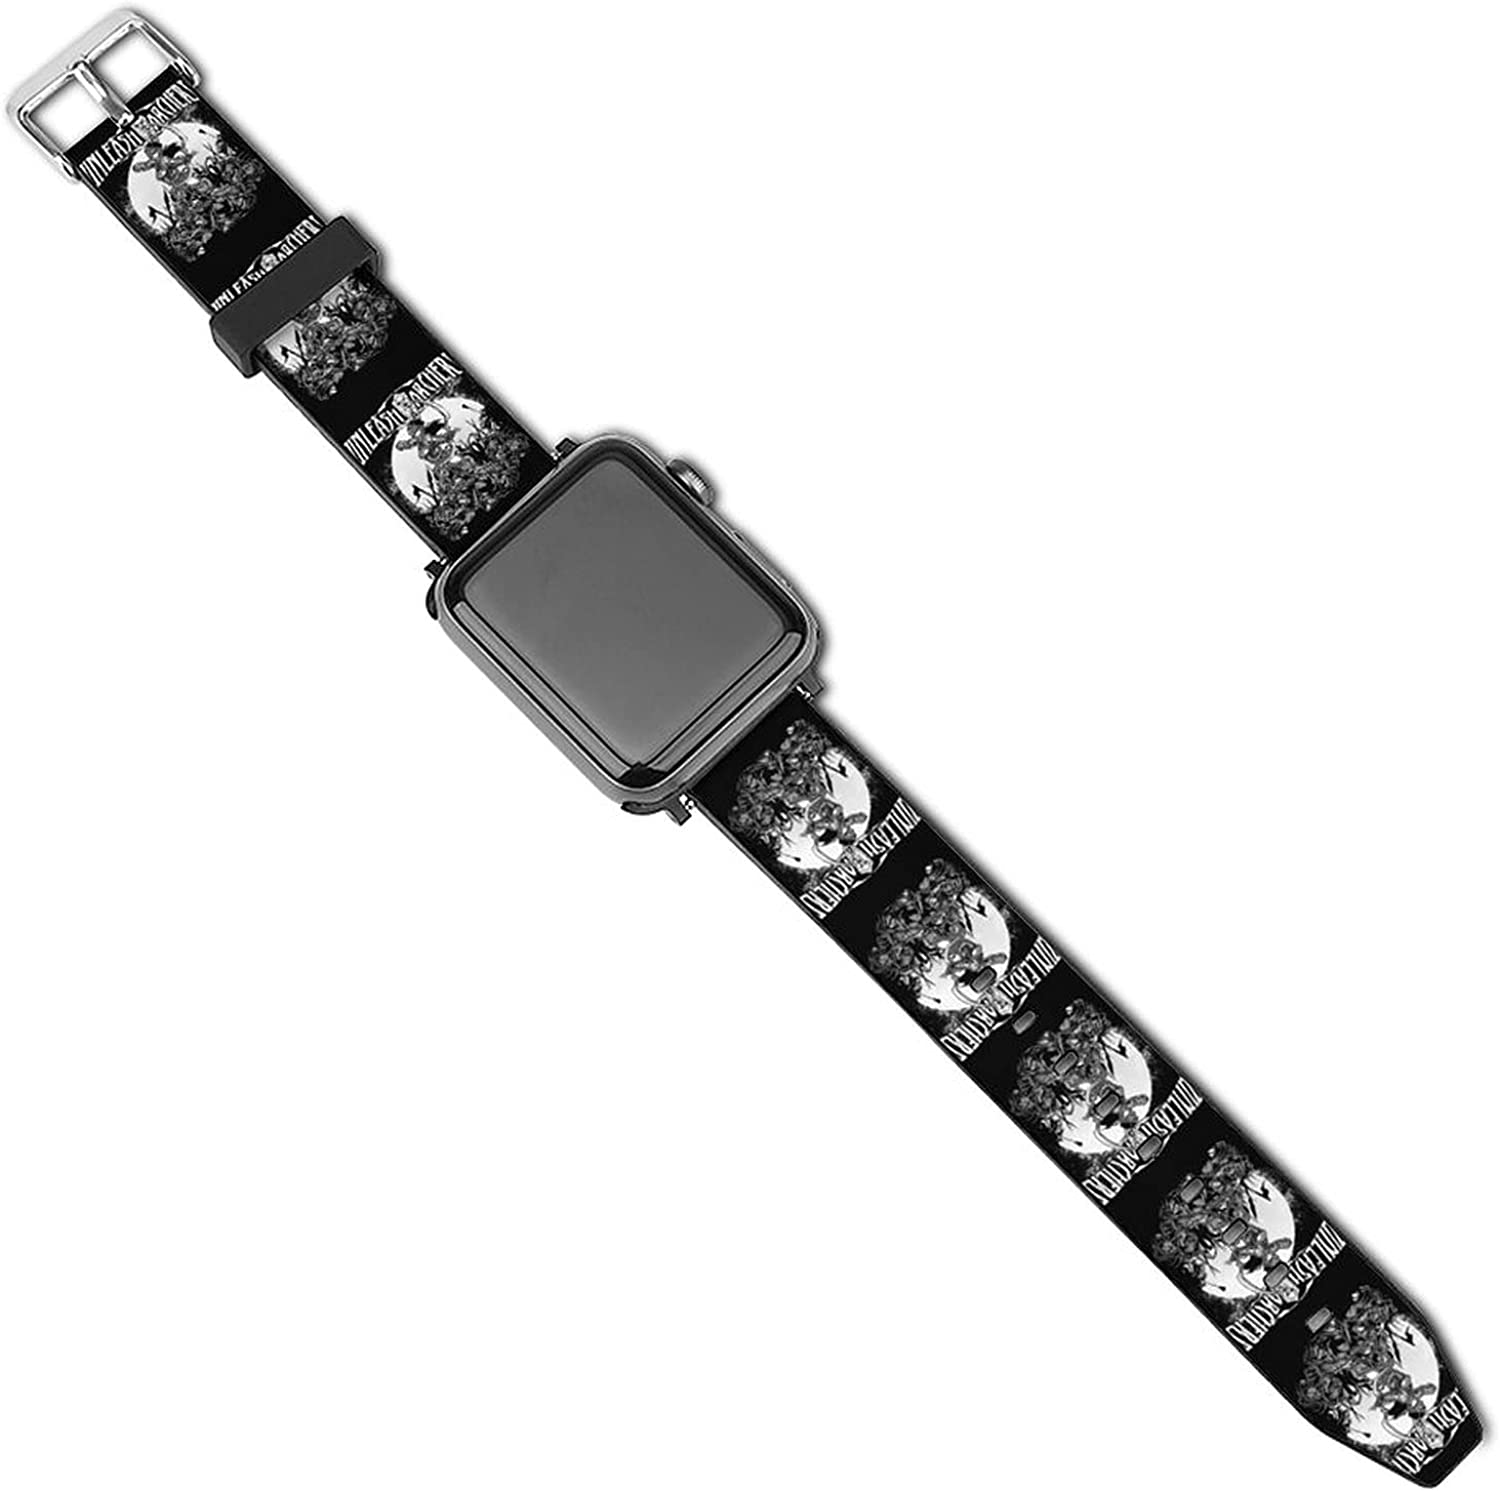 Un-leash The-Archers Patterned Leather Wristband Strap for Apple Watch Series 5/4/3/2/1